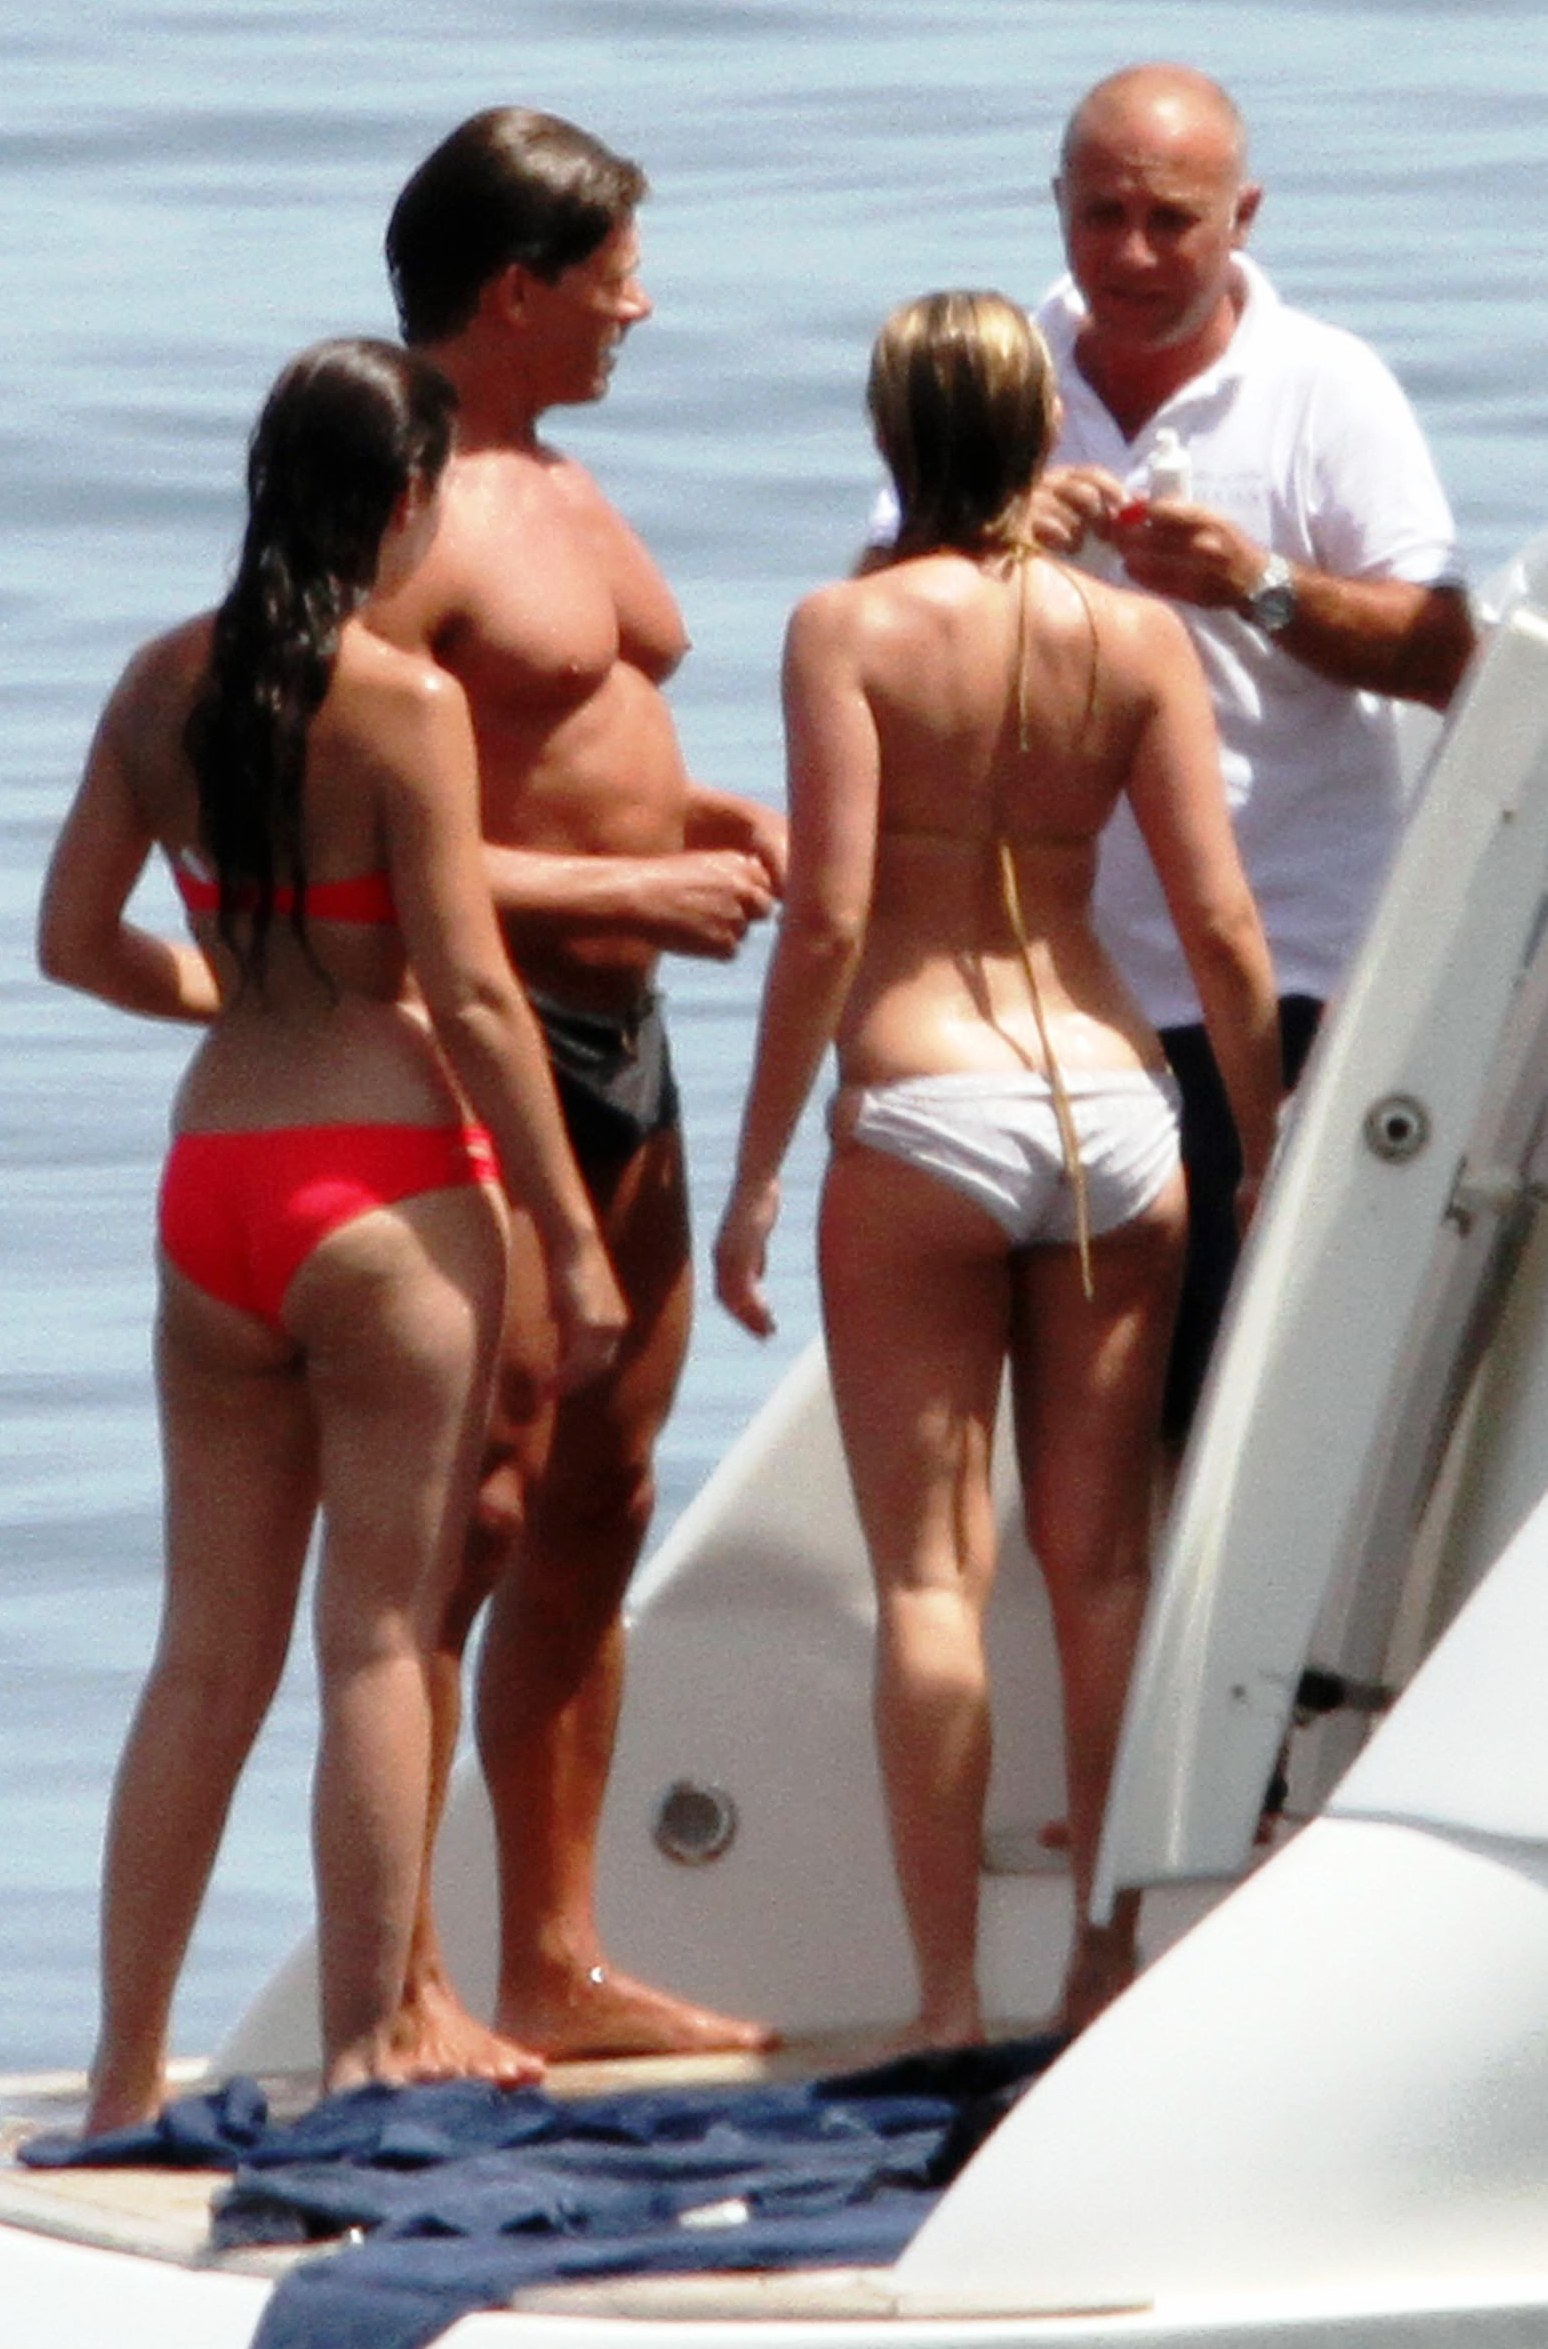 scarlett johansson ass Scarlett Johanssons BIkini Ass On A Boat